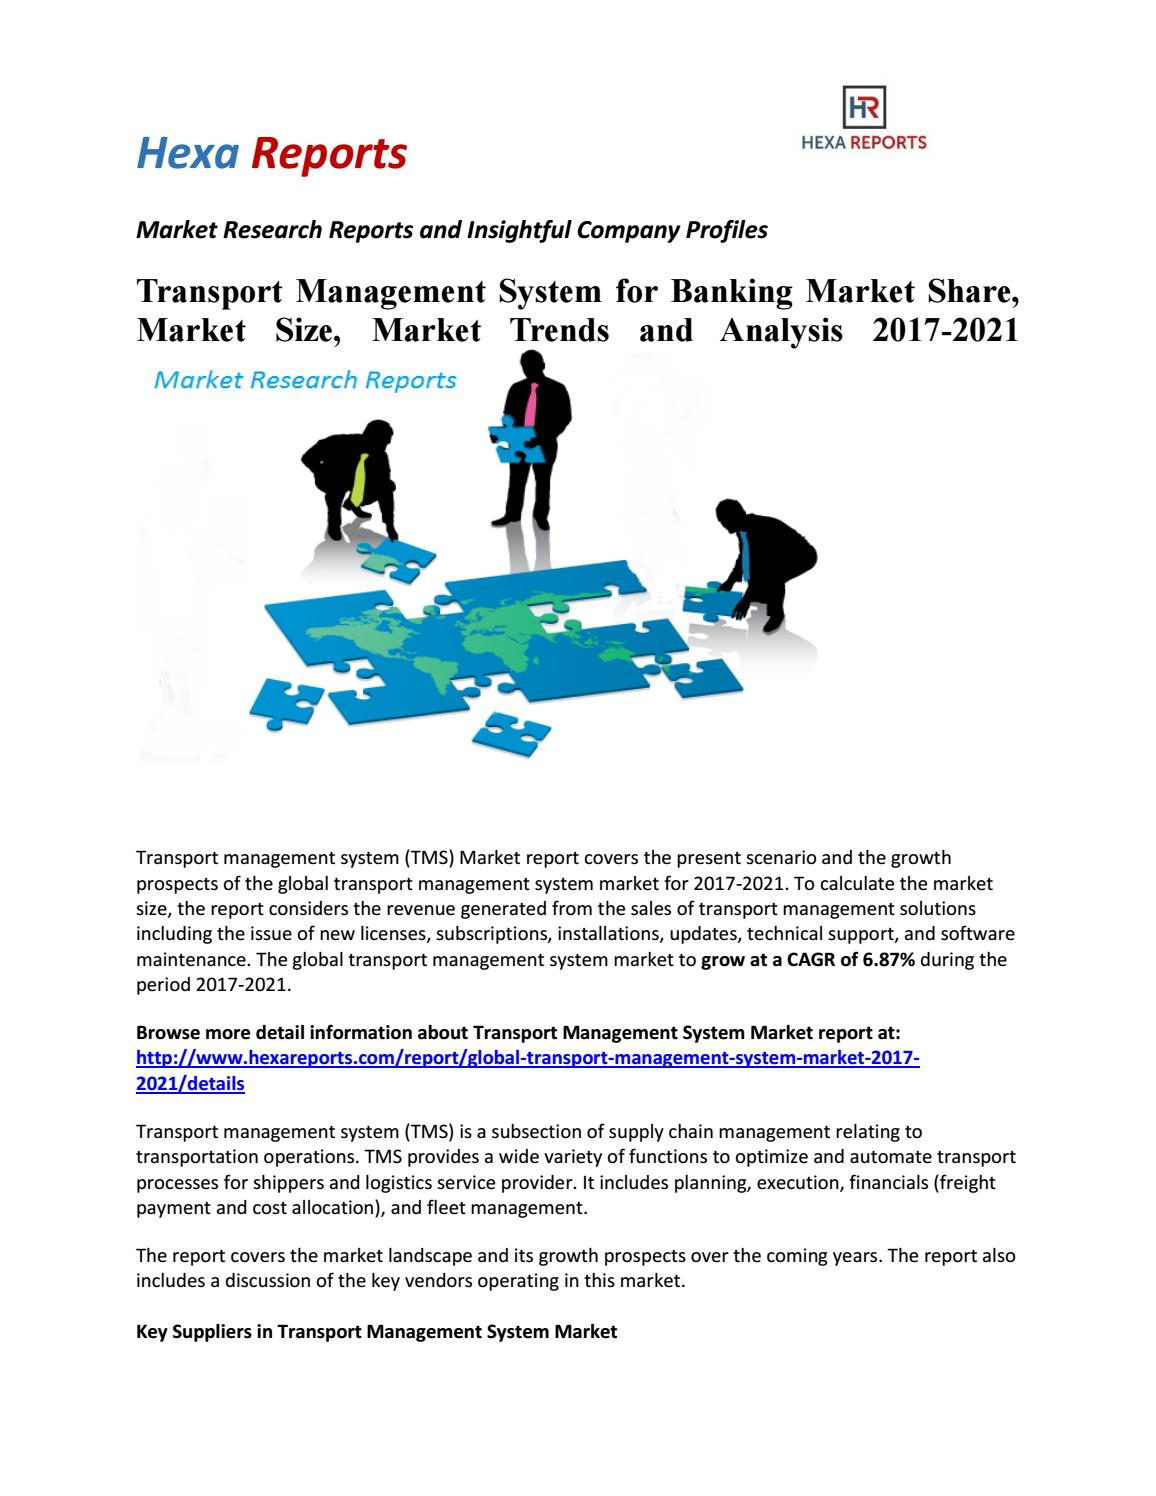 Transport management system for banking market share, market size, market  trends and analysis 2021